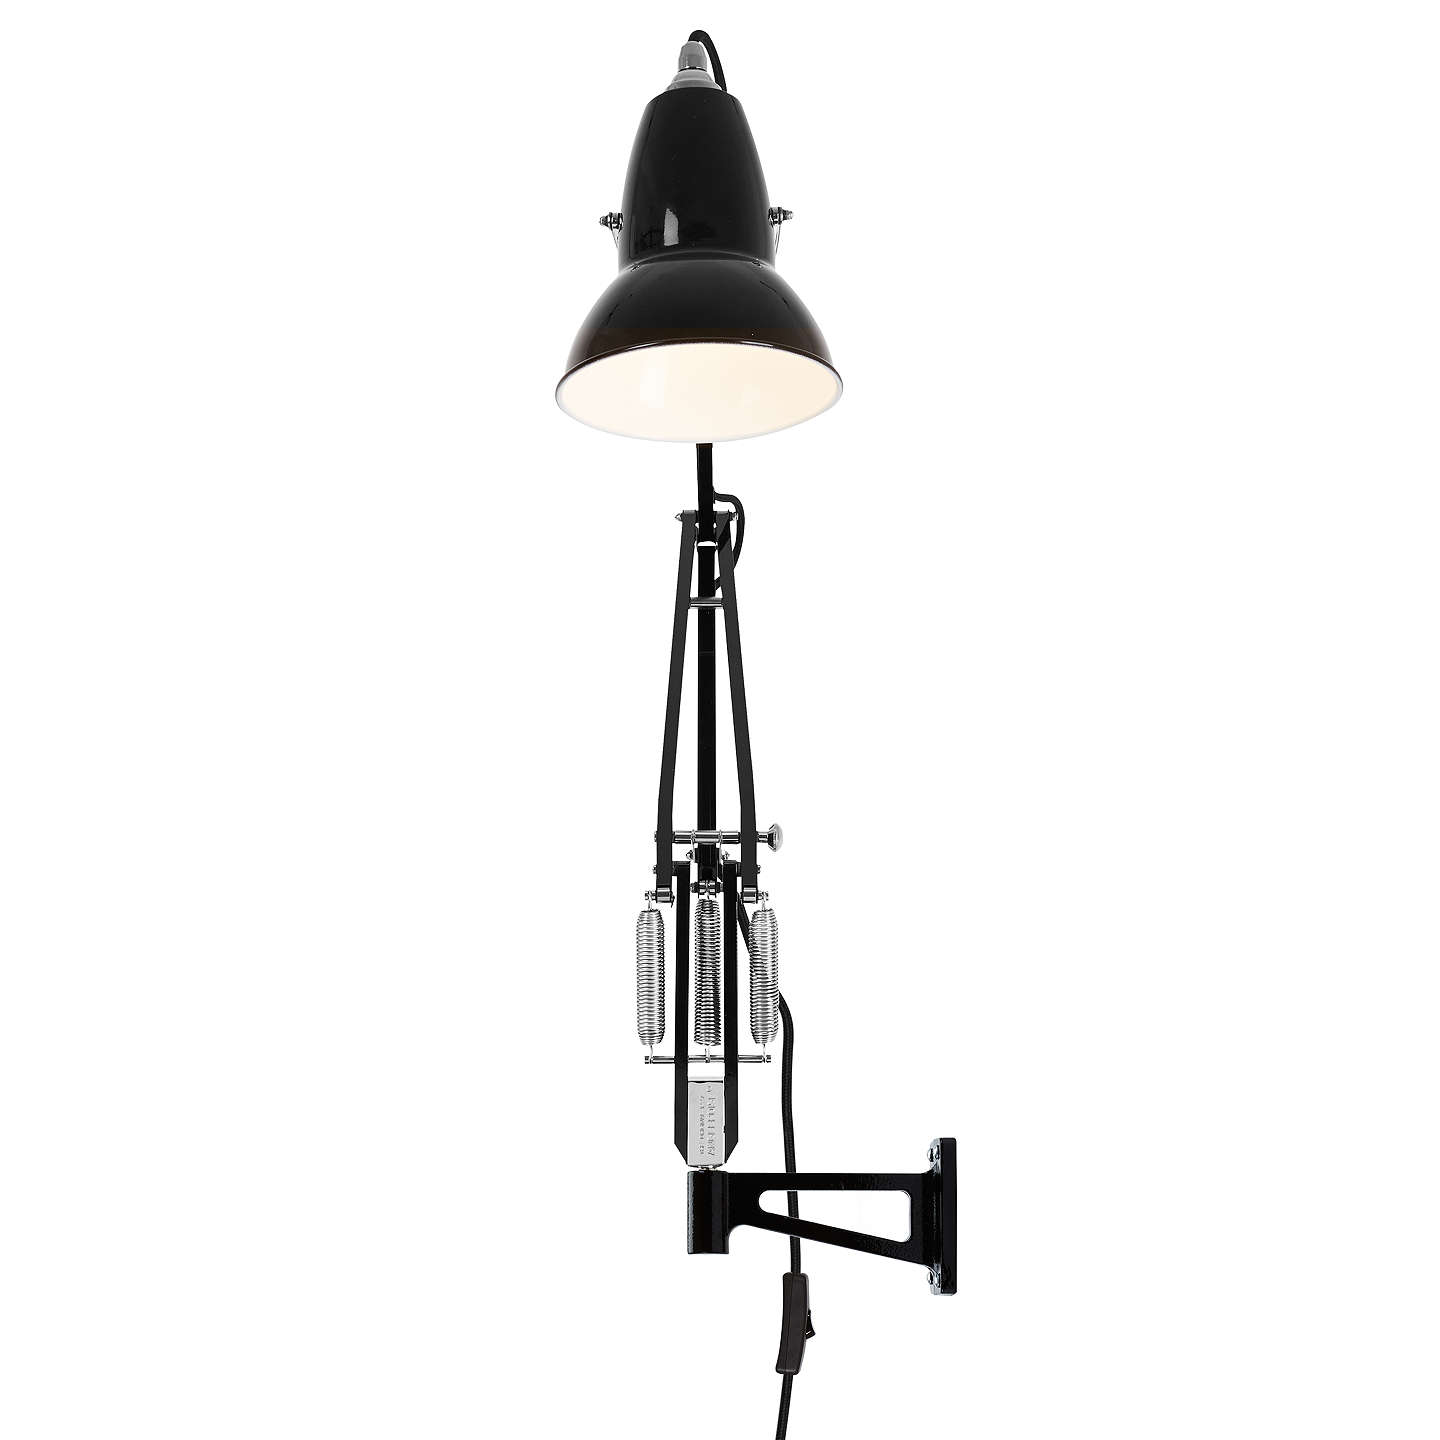 Anglepoise Original 1227 Extendable Wall Light At John Lewis